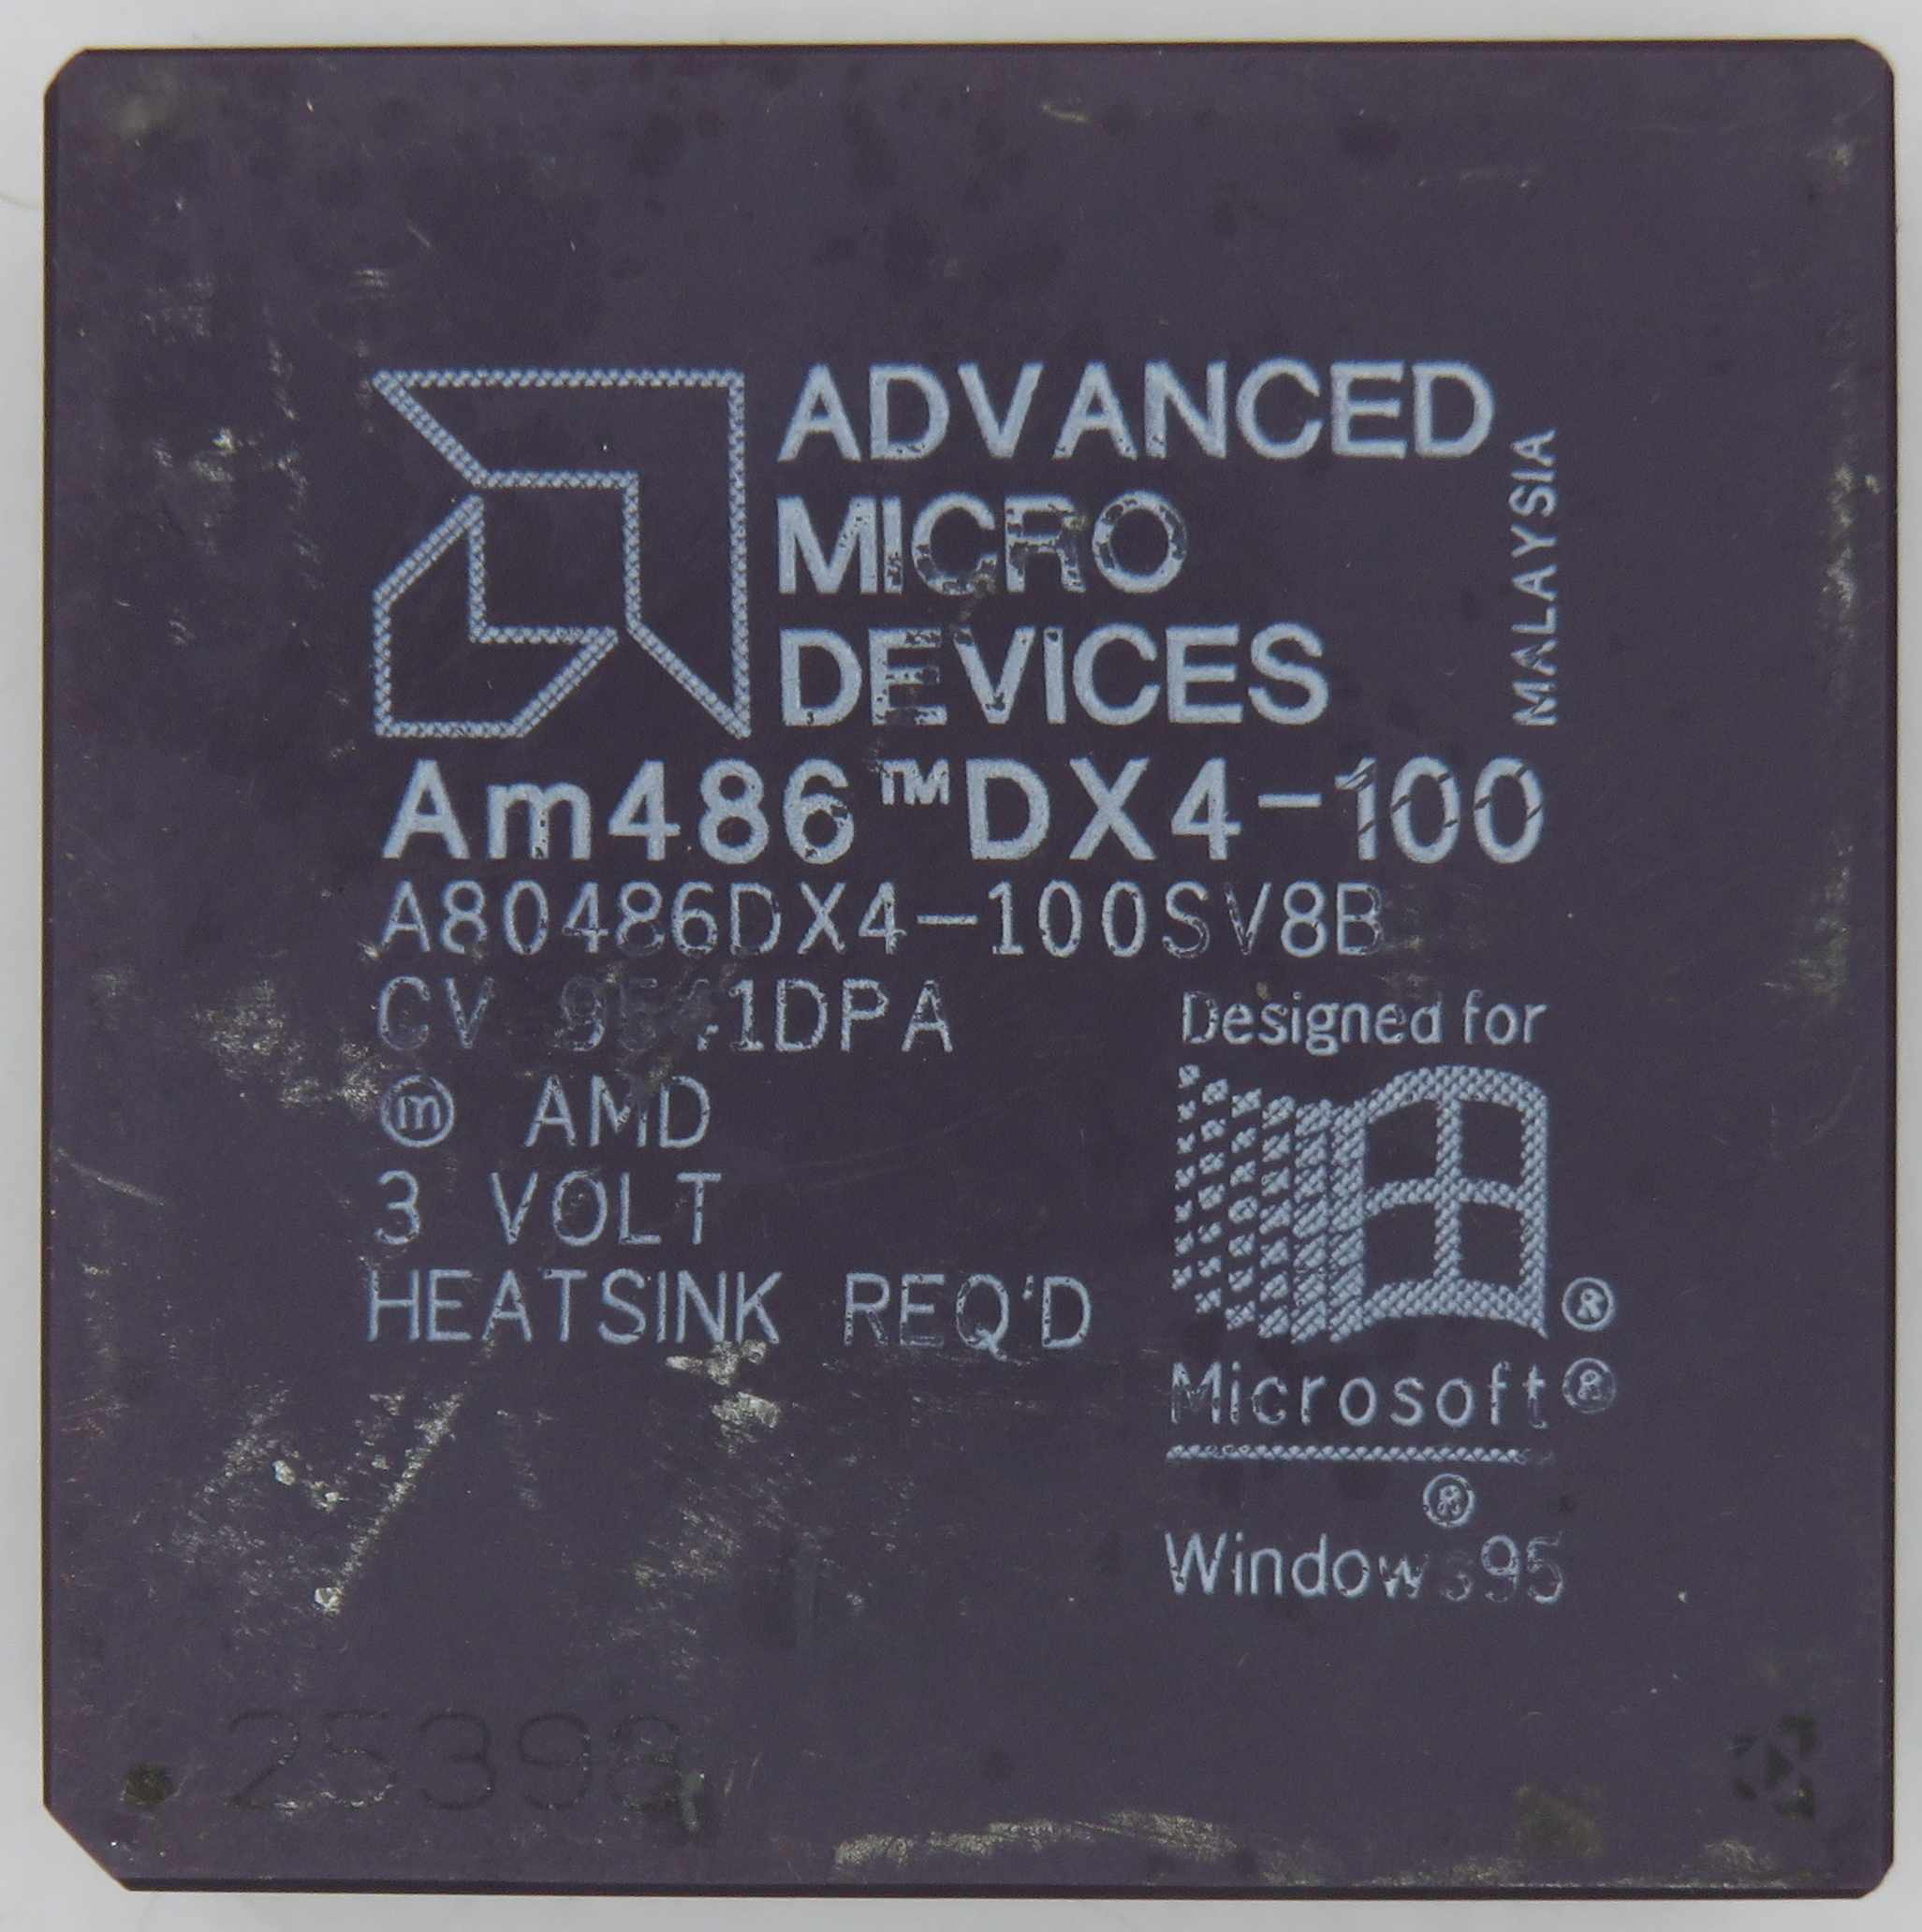 AMD 486 DX4 100 WIN95.jpg